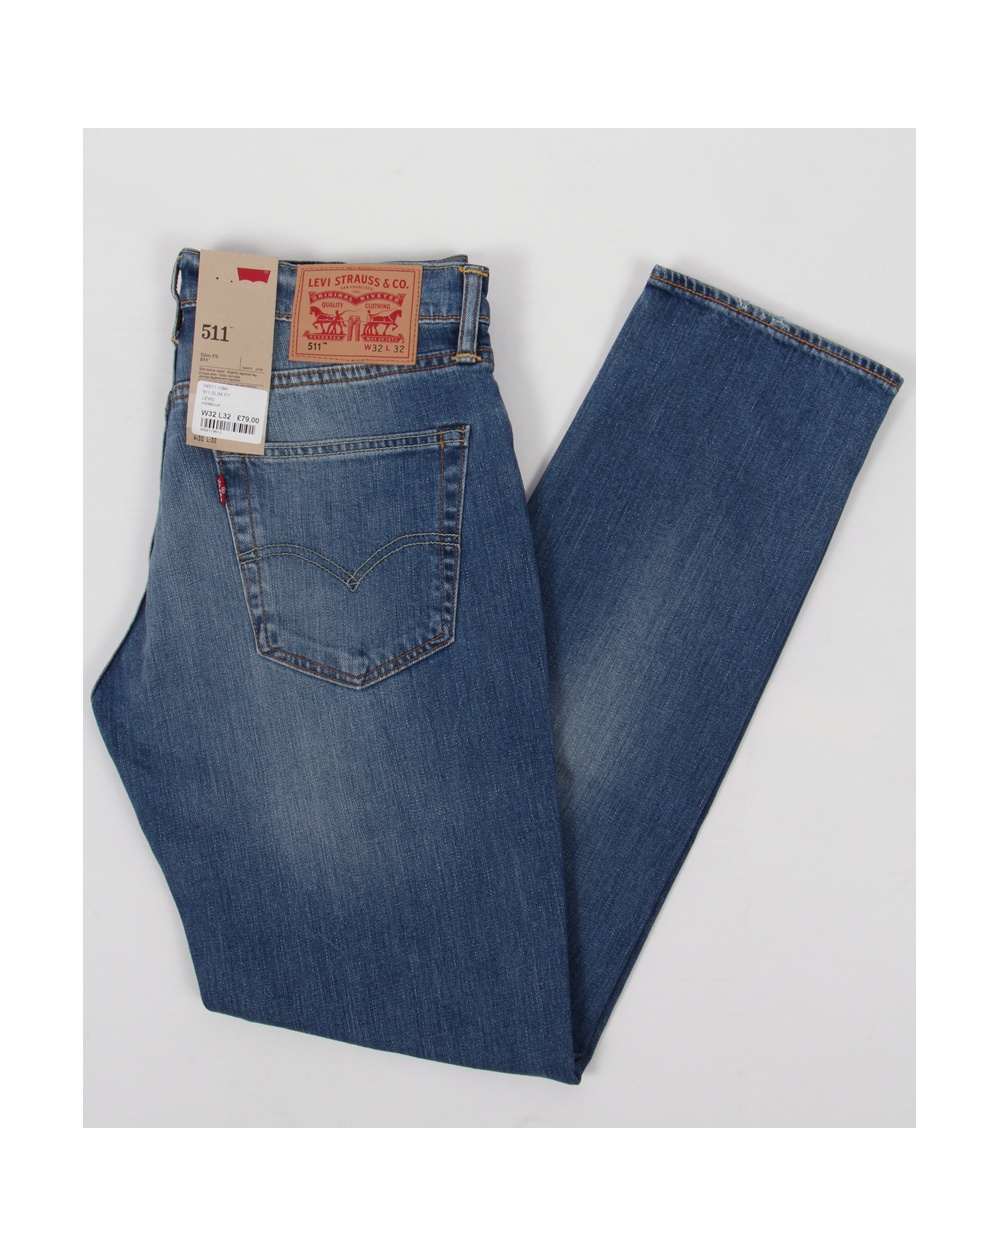 d809dc09988 Levis 511 Slim Fit Jeans Harbour